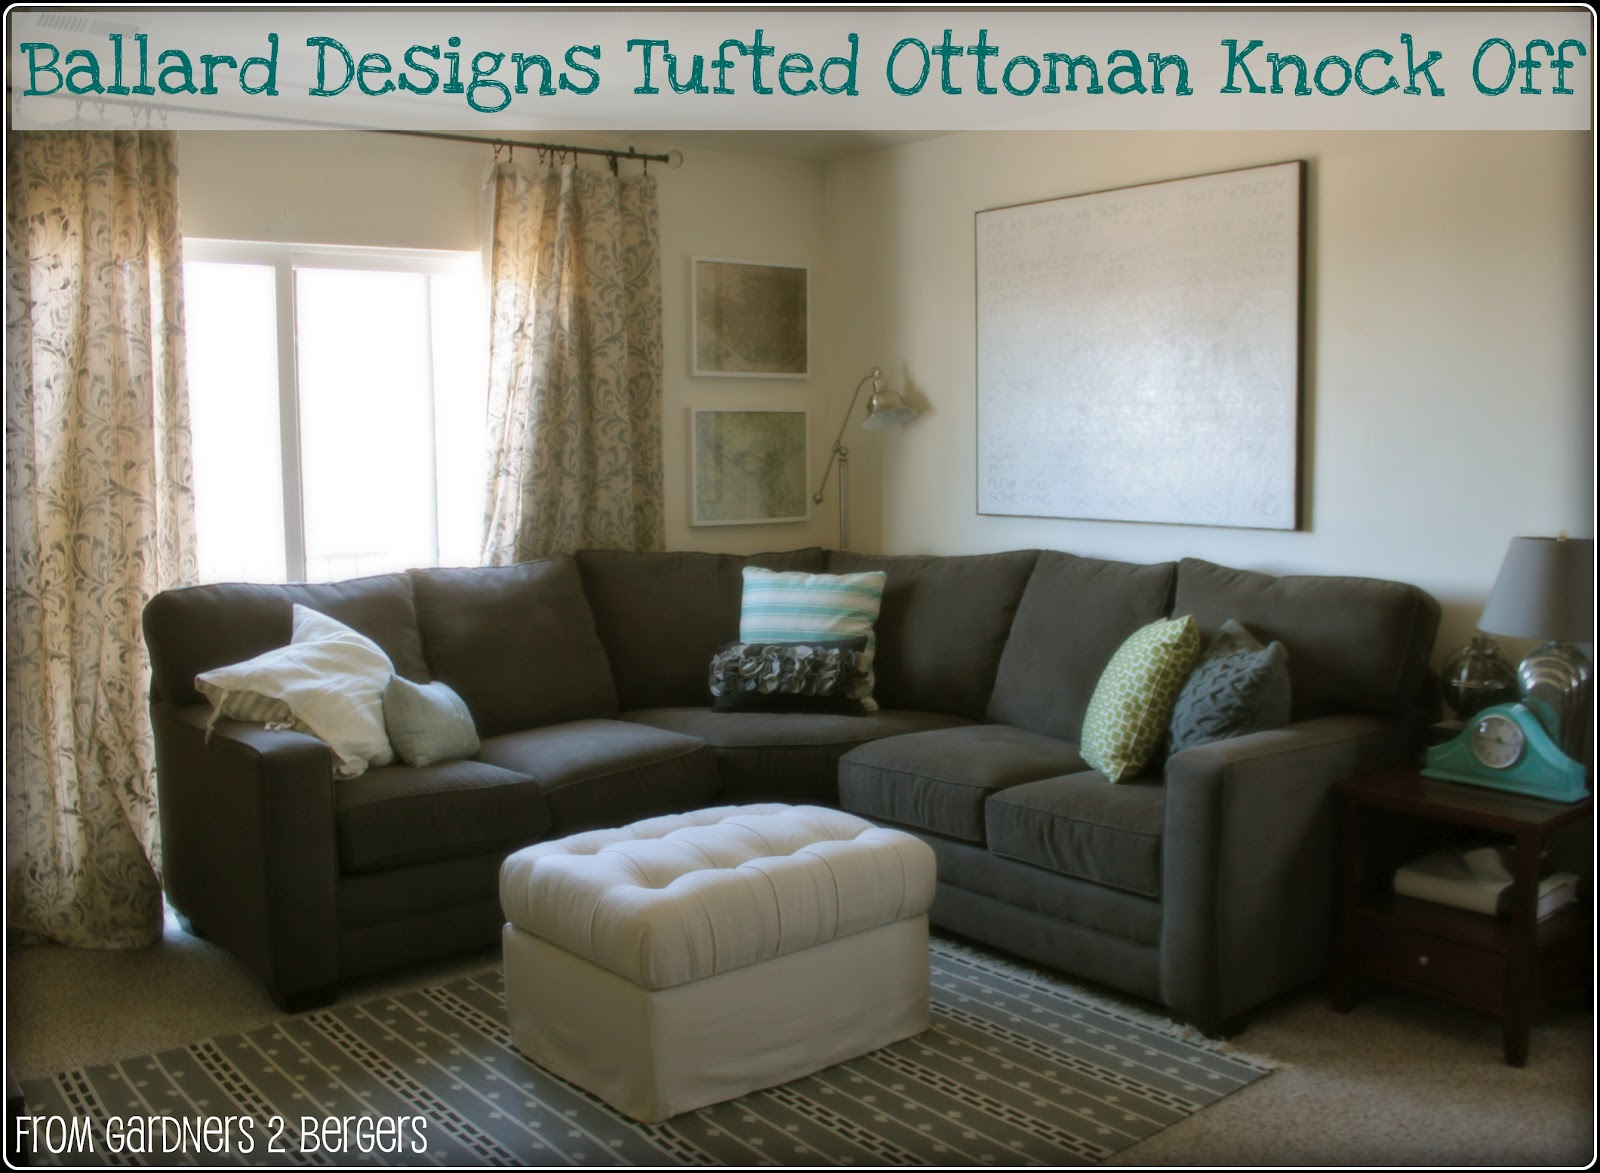 Ballard-Designs-Tufted-Ottoman-Knock-Off